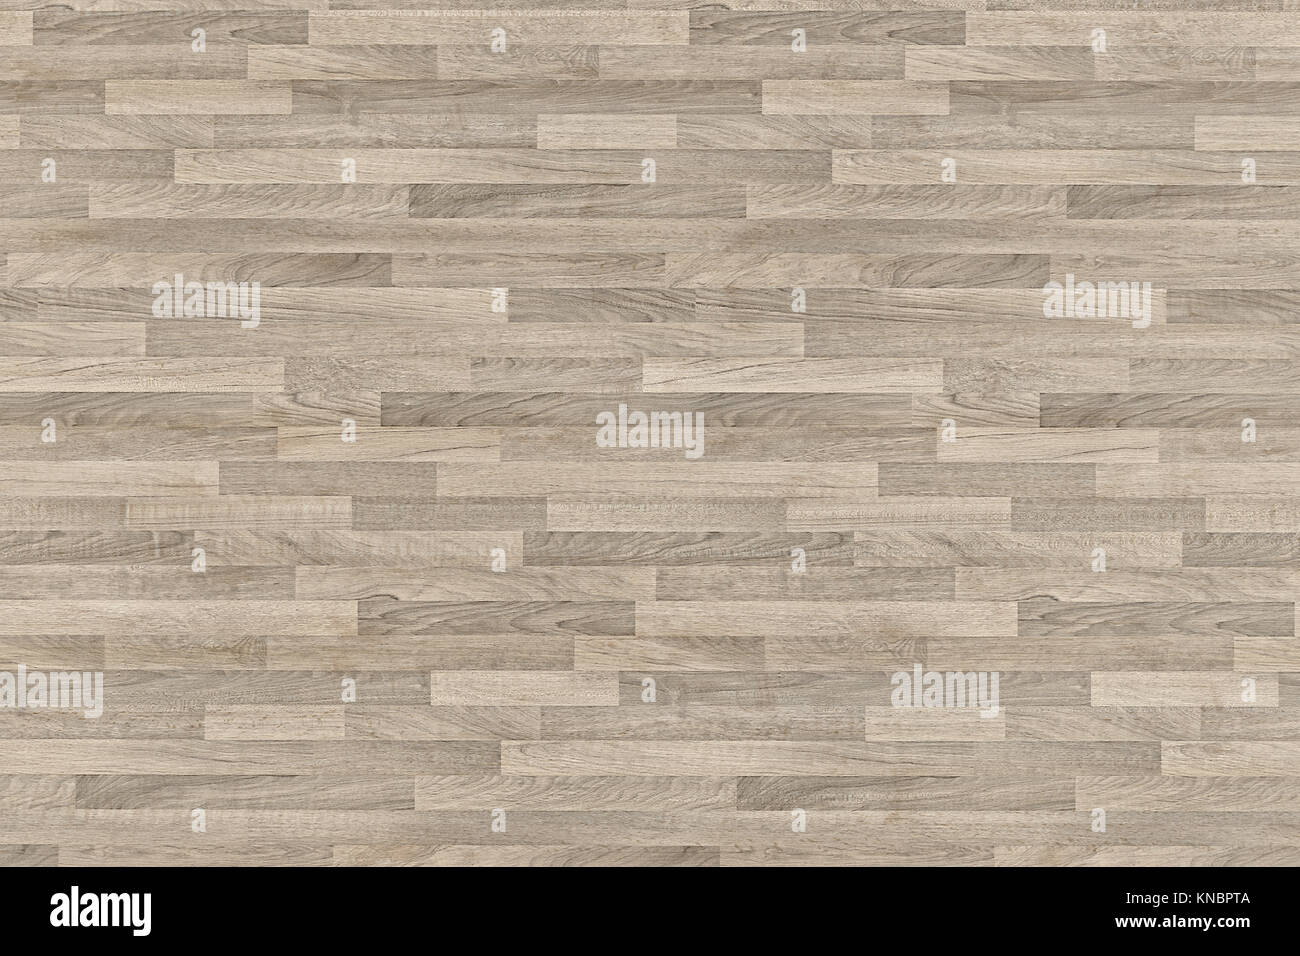 Laminate parquet flooring. Light wooden texture background. - Stock Image